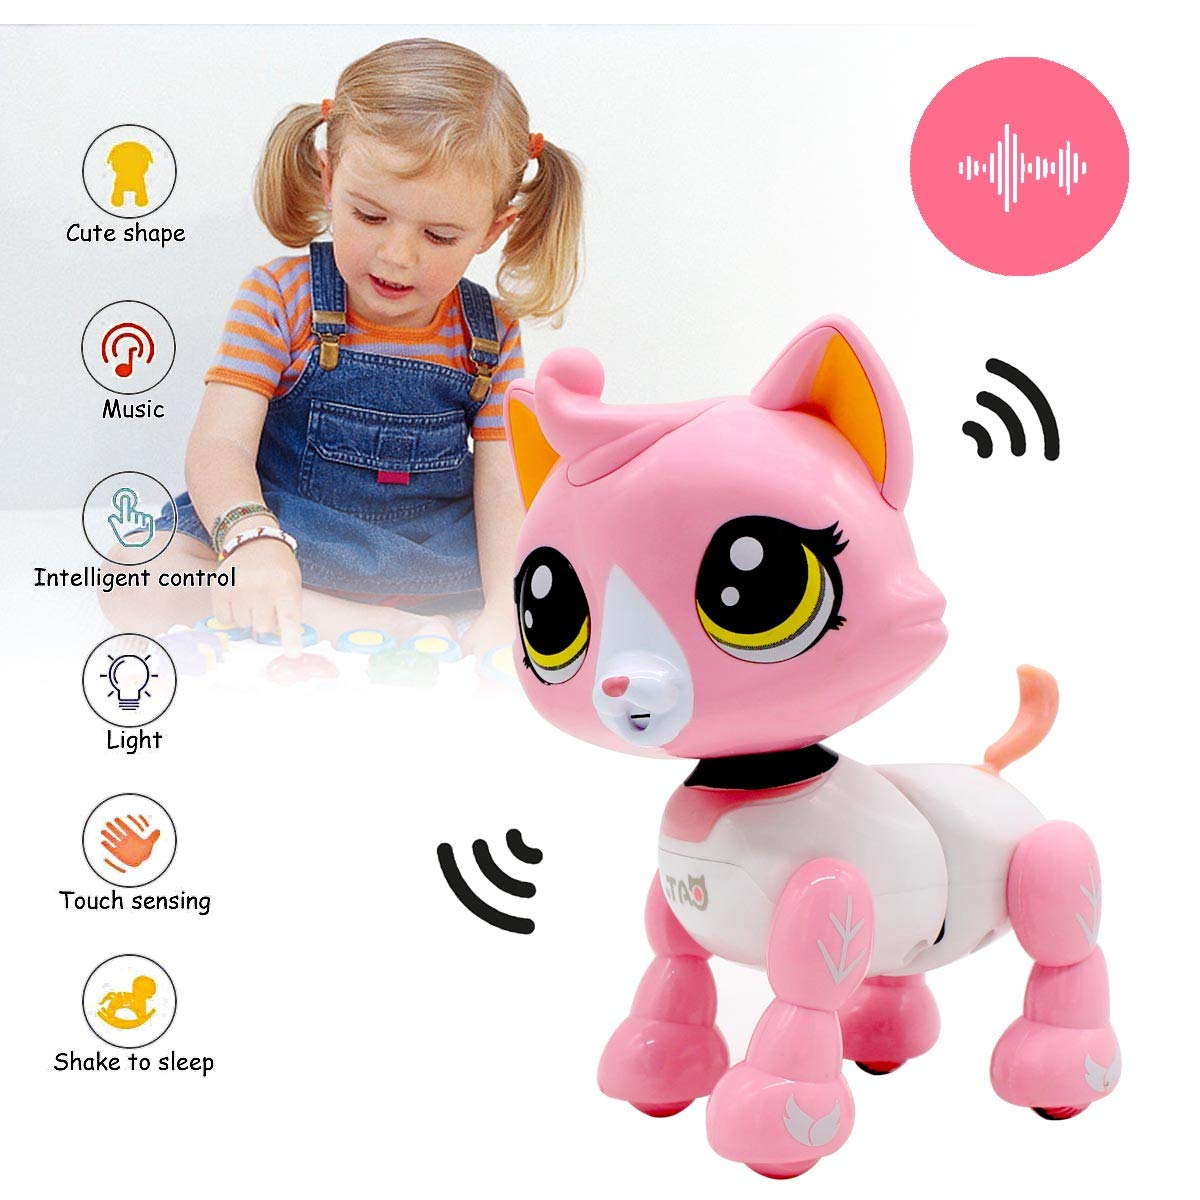 Yehtta Gifts for 3-8 Year Old Girls Robot Cat Toddler Interactive Toy Pet Autism Toys Electronic Toy Catty Kids Gifts Pink by Yehtta (Image #1)